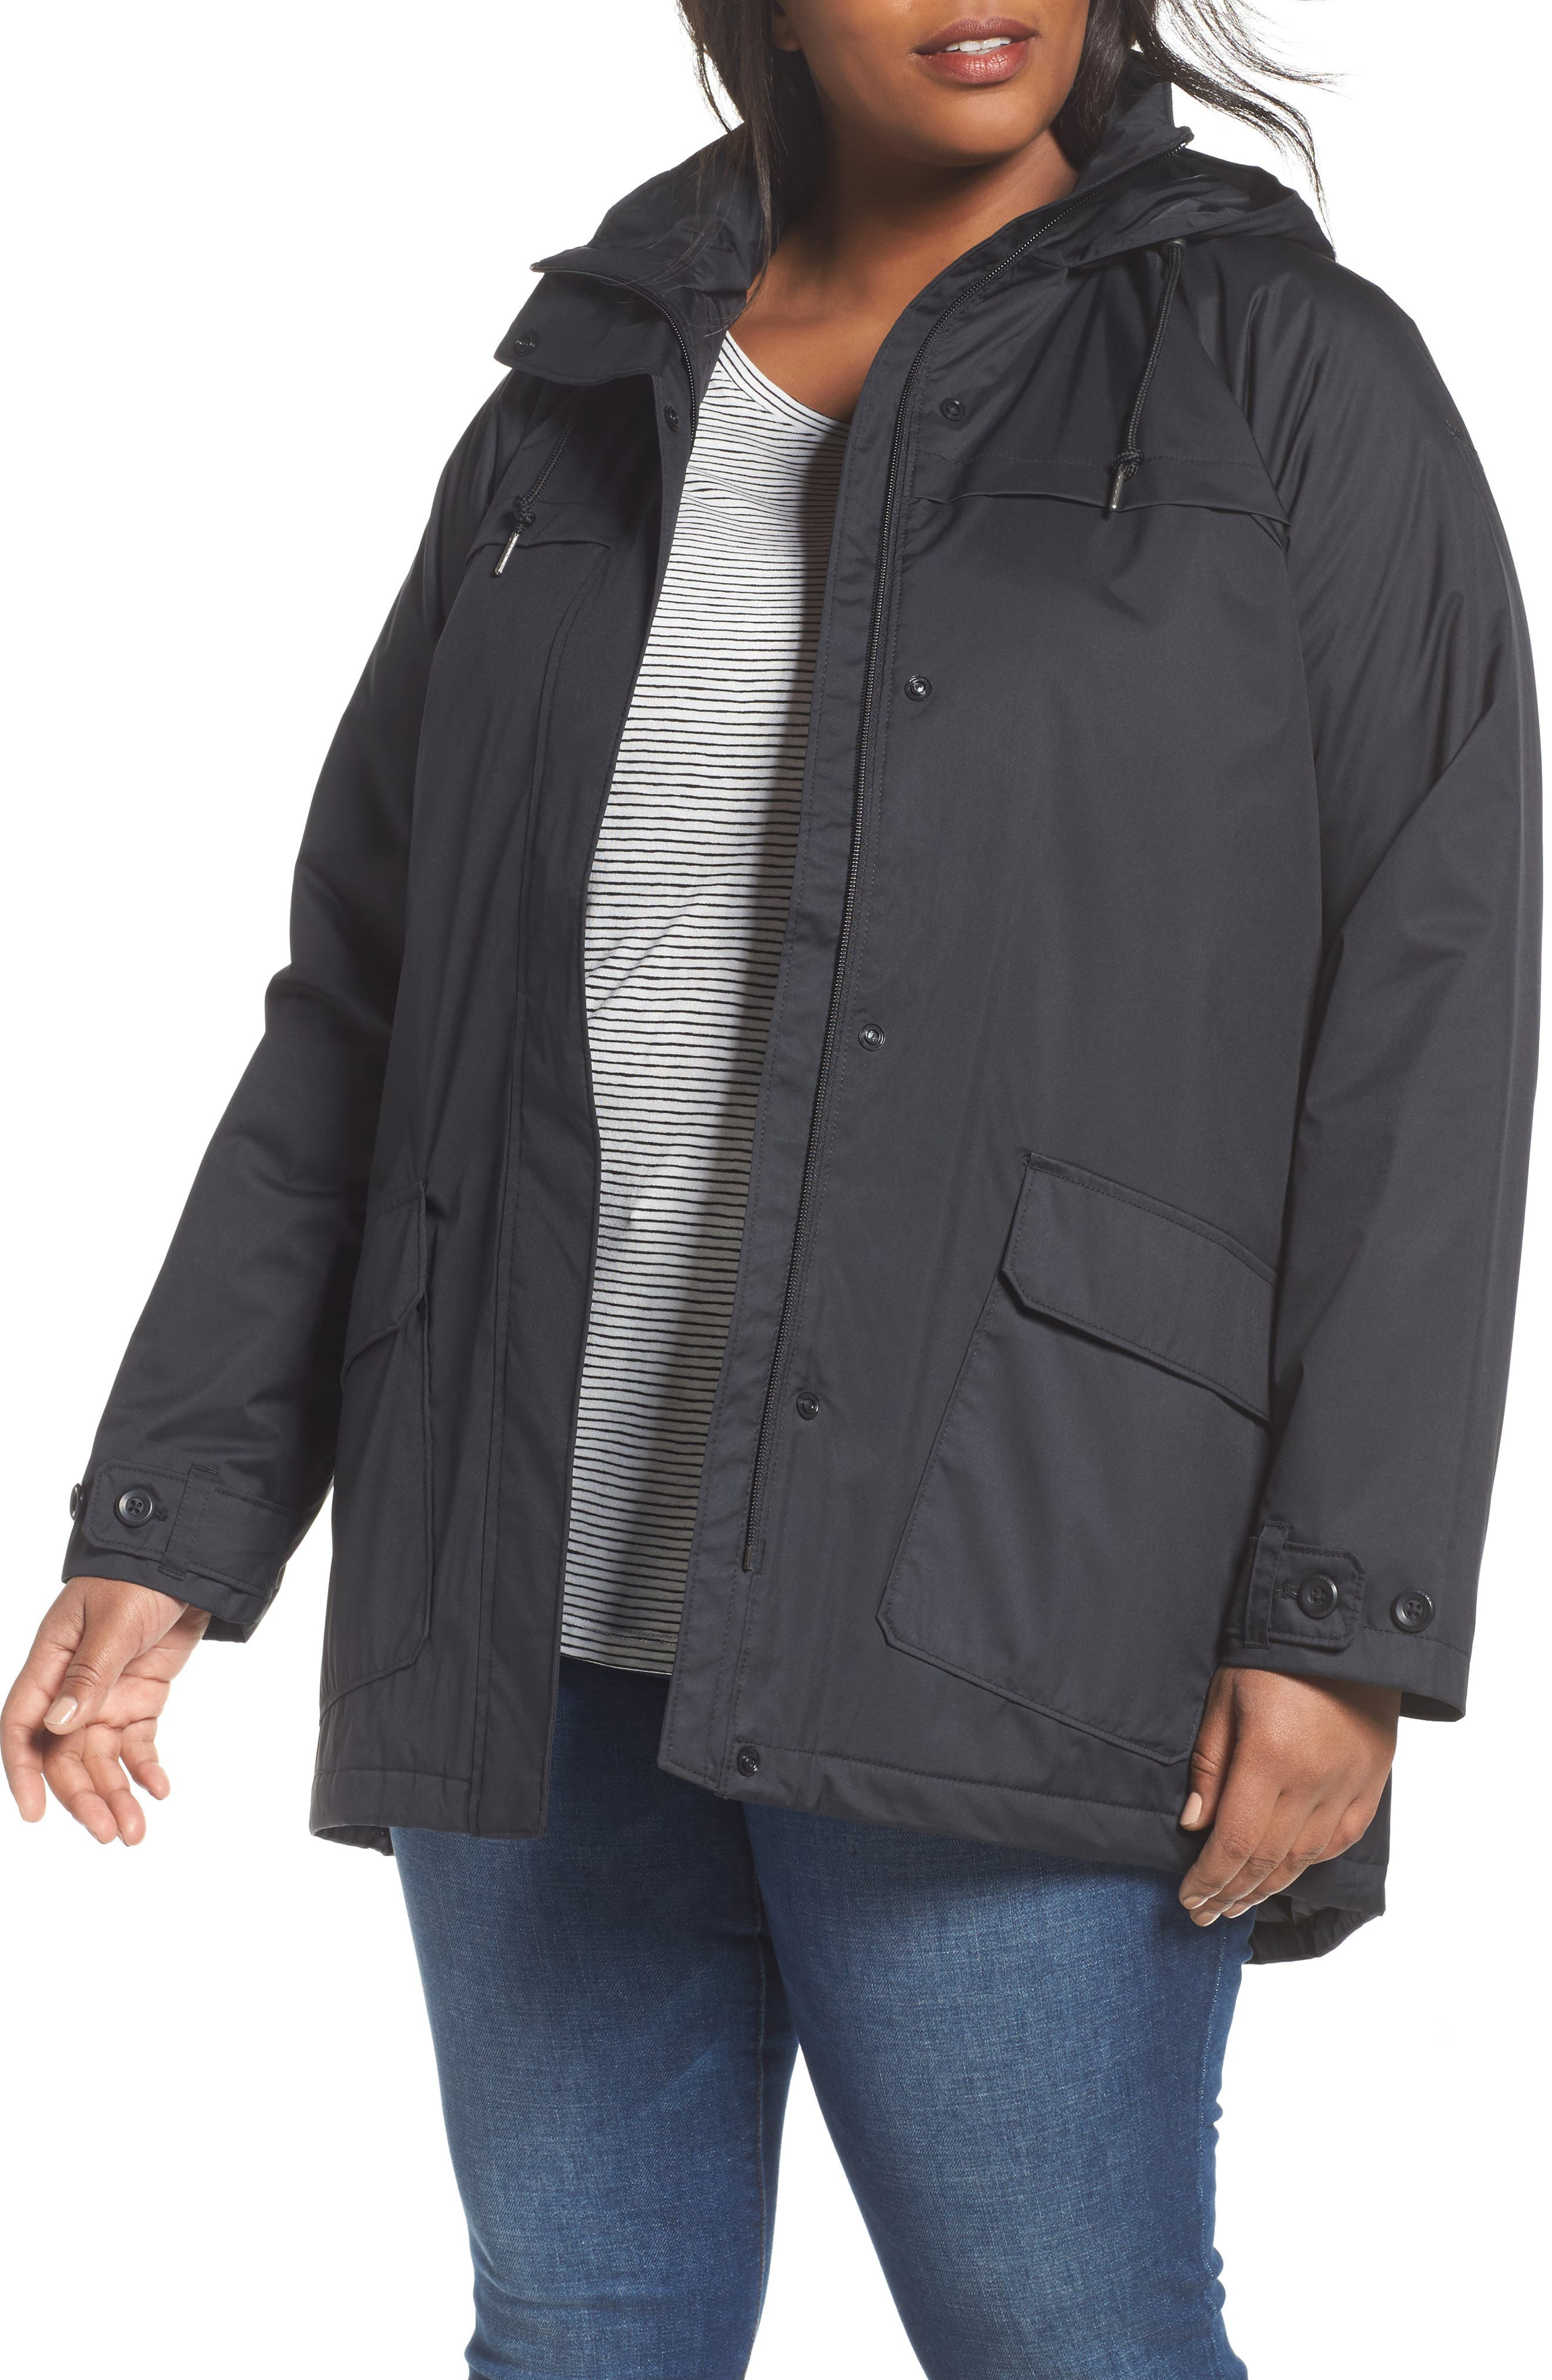 Main Image - Columbia Lookout Crest Omni-Tech Waterproof Jacket (Plus Size)